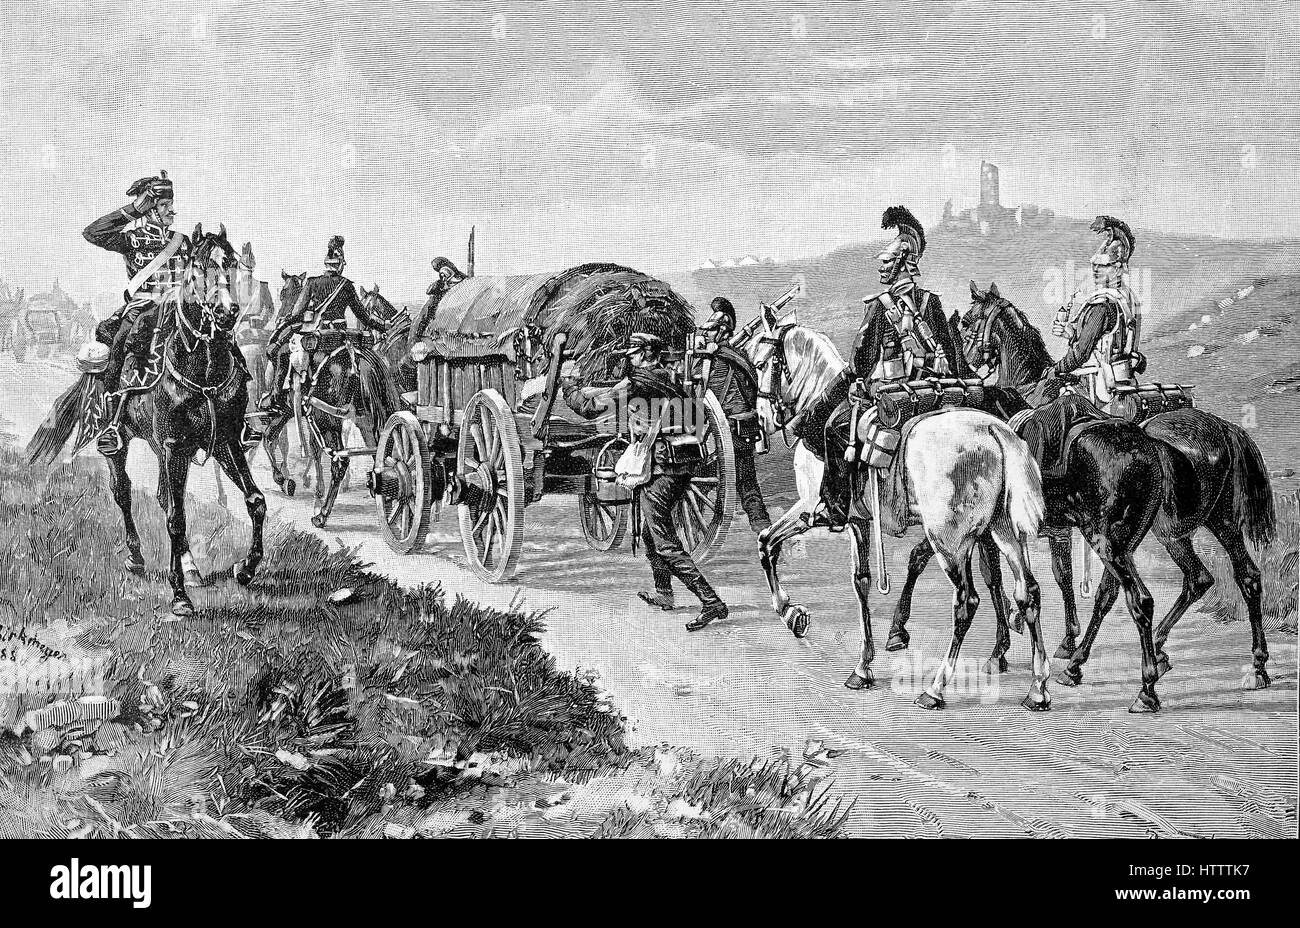 Military people in the Franco-Prussian War 1870 - 1871, A Bavarian Trainkolonne, designation for military transport, - Stock Image